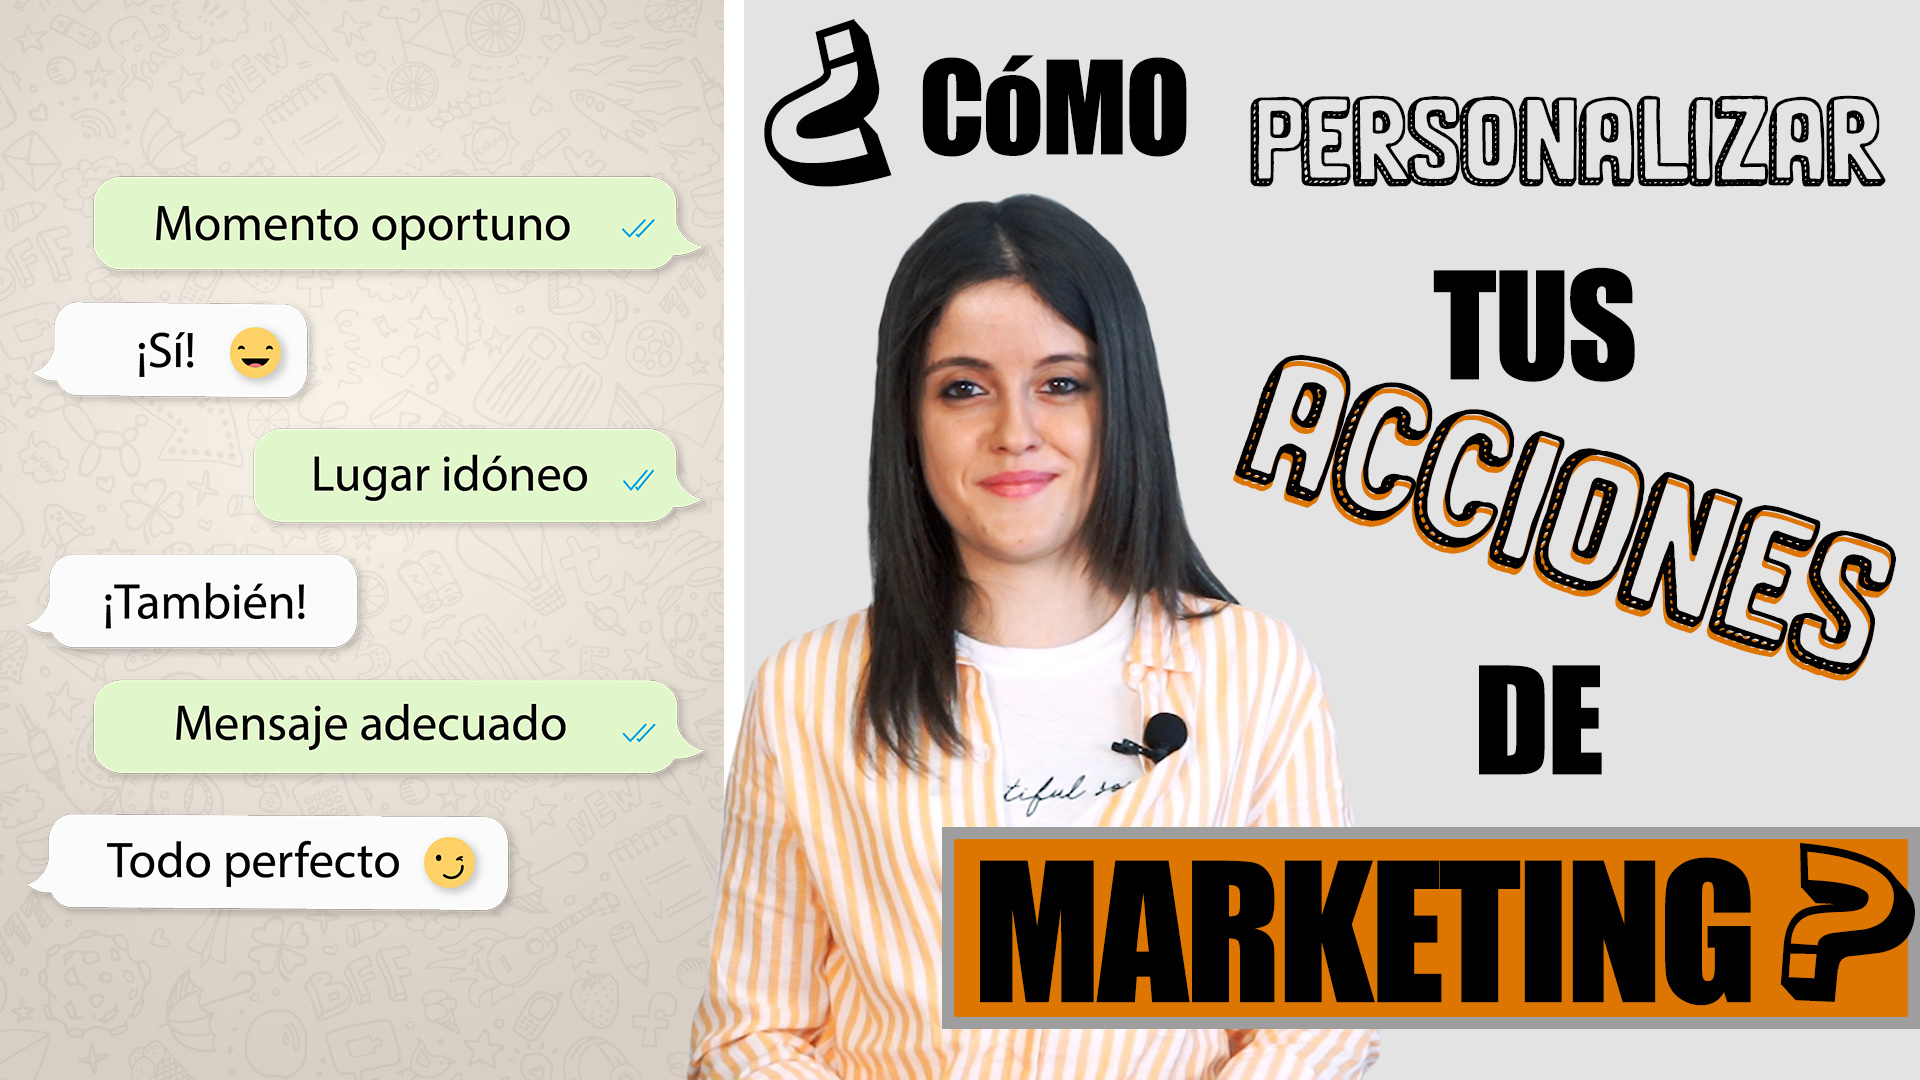 EL MARKETING CONTEXTUAL PERSONALIZA CADA ACCION DE TU MARCA_v2